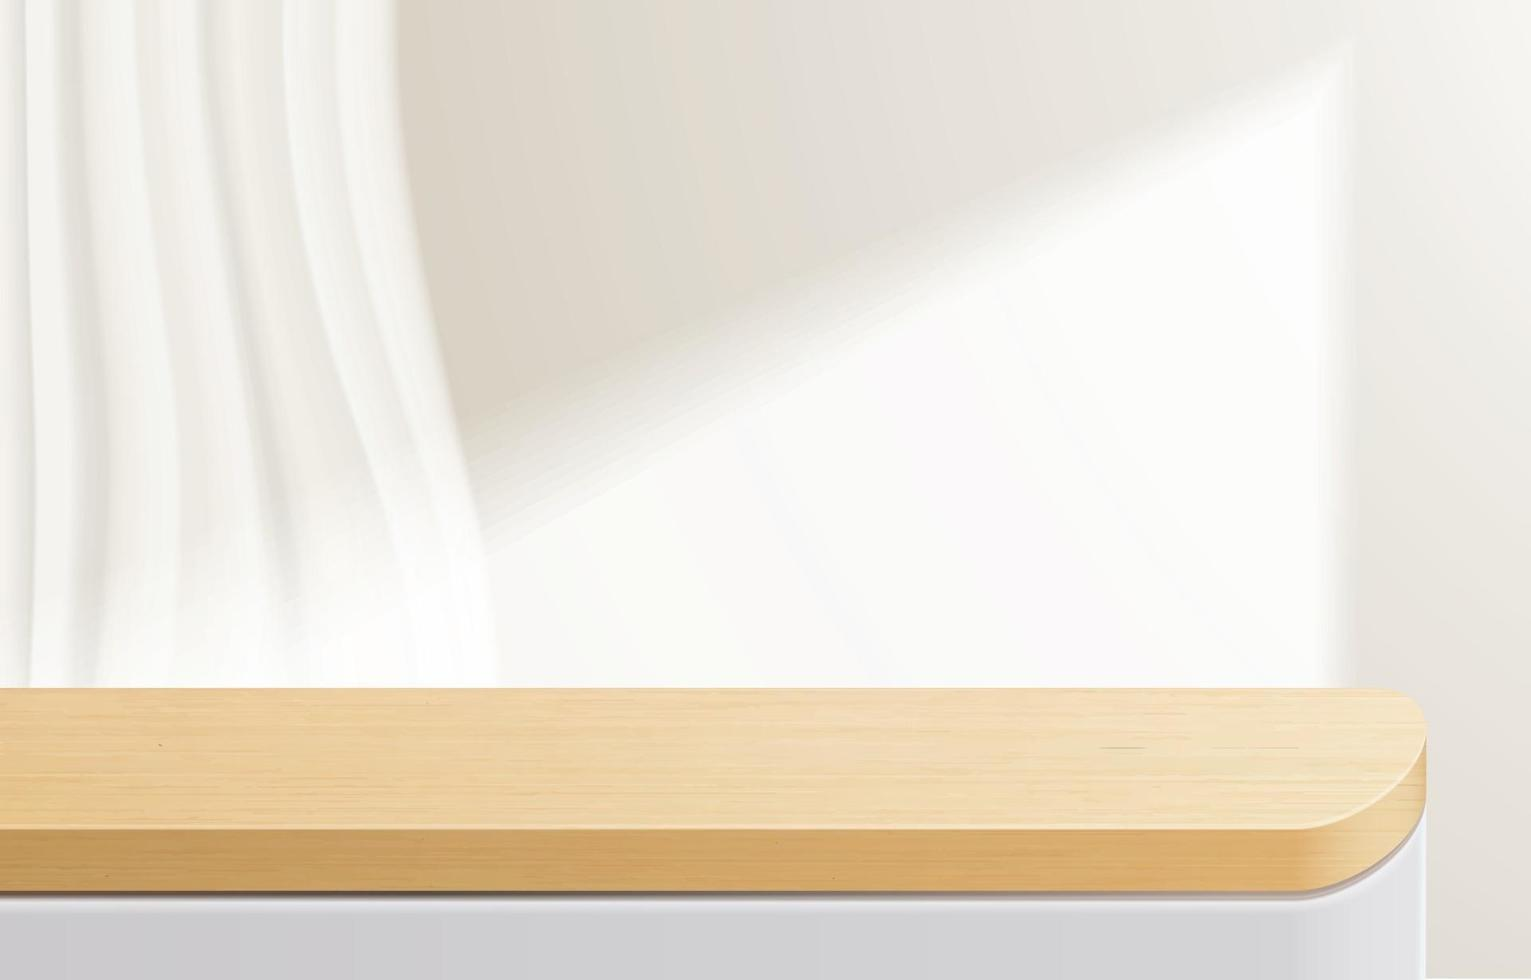 Empty minimal wooden top table, wood podium in white background. for product presentation, mock up, show cosmetic product display, Podium, stage pedestal or platform. 3d vector